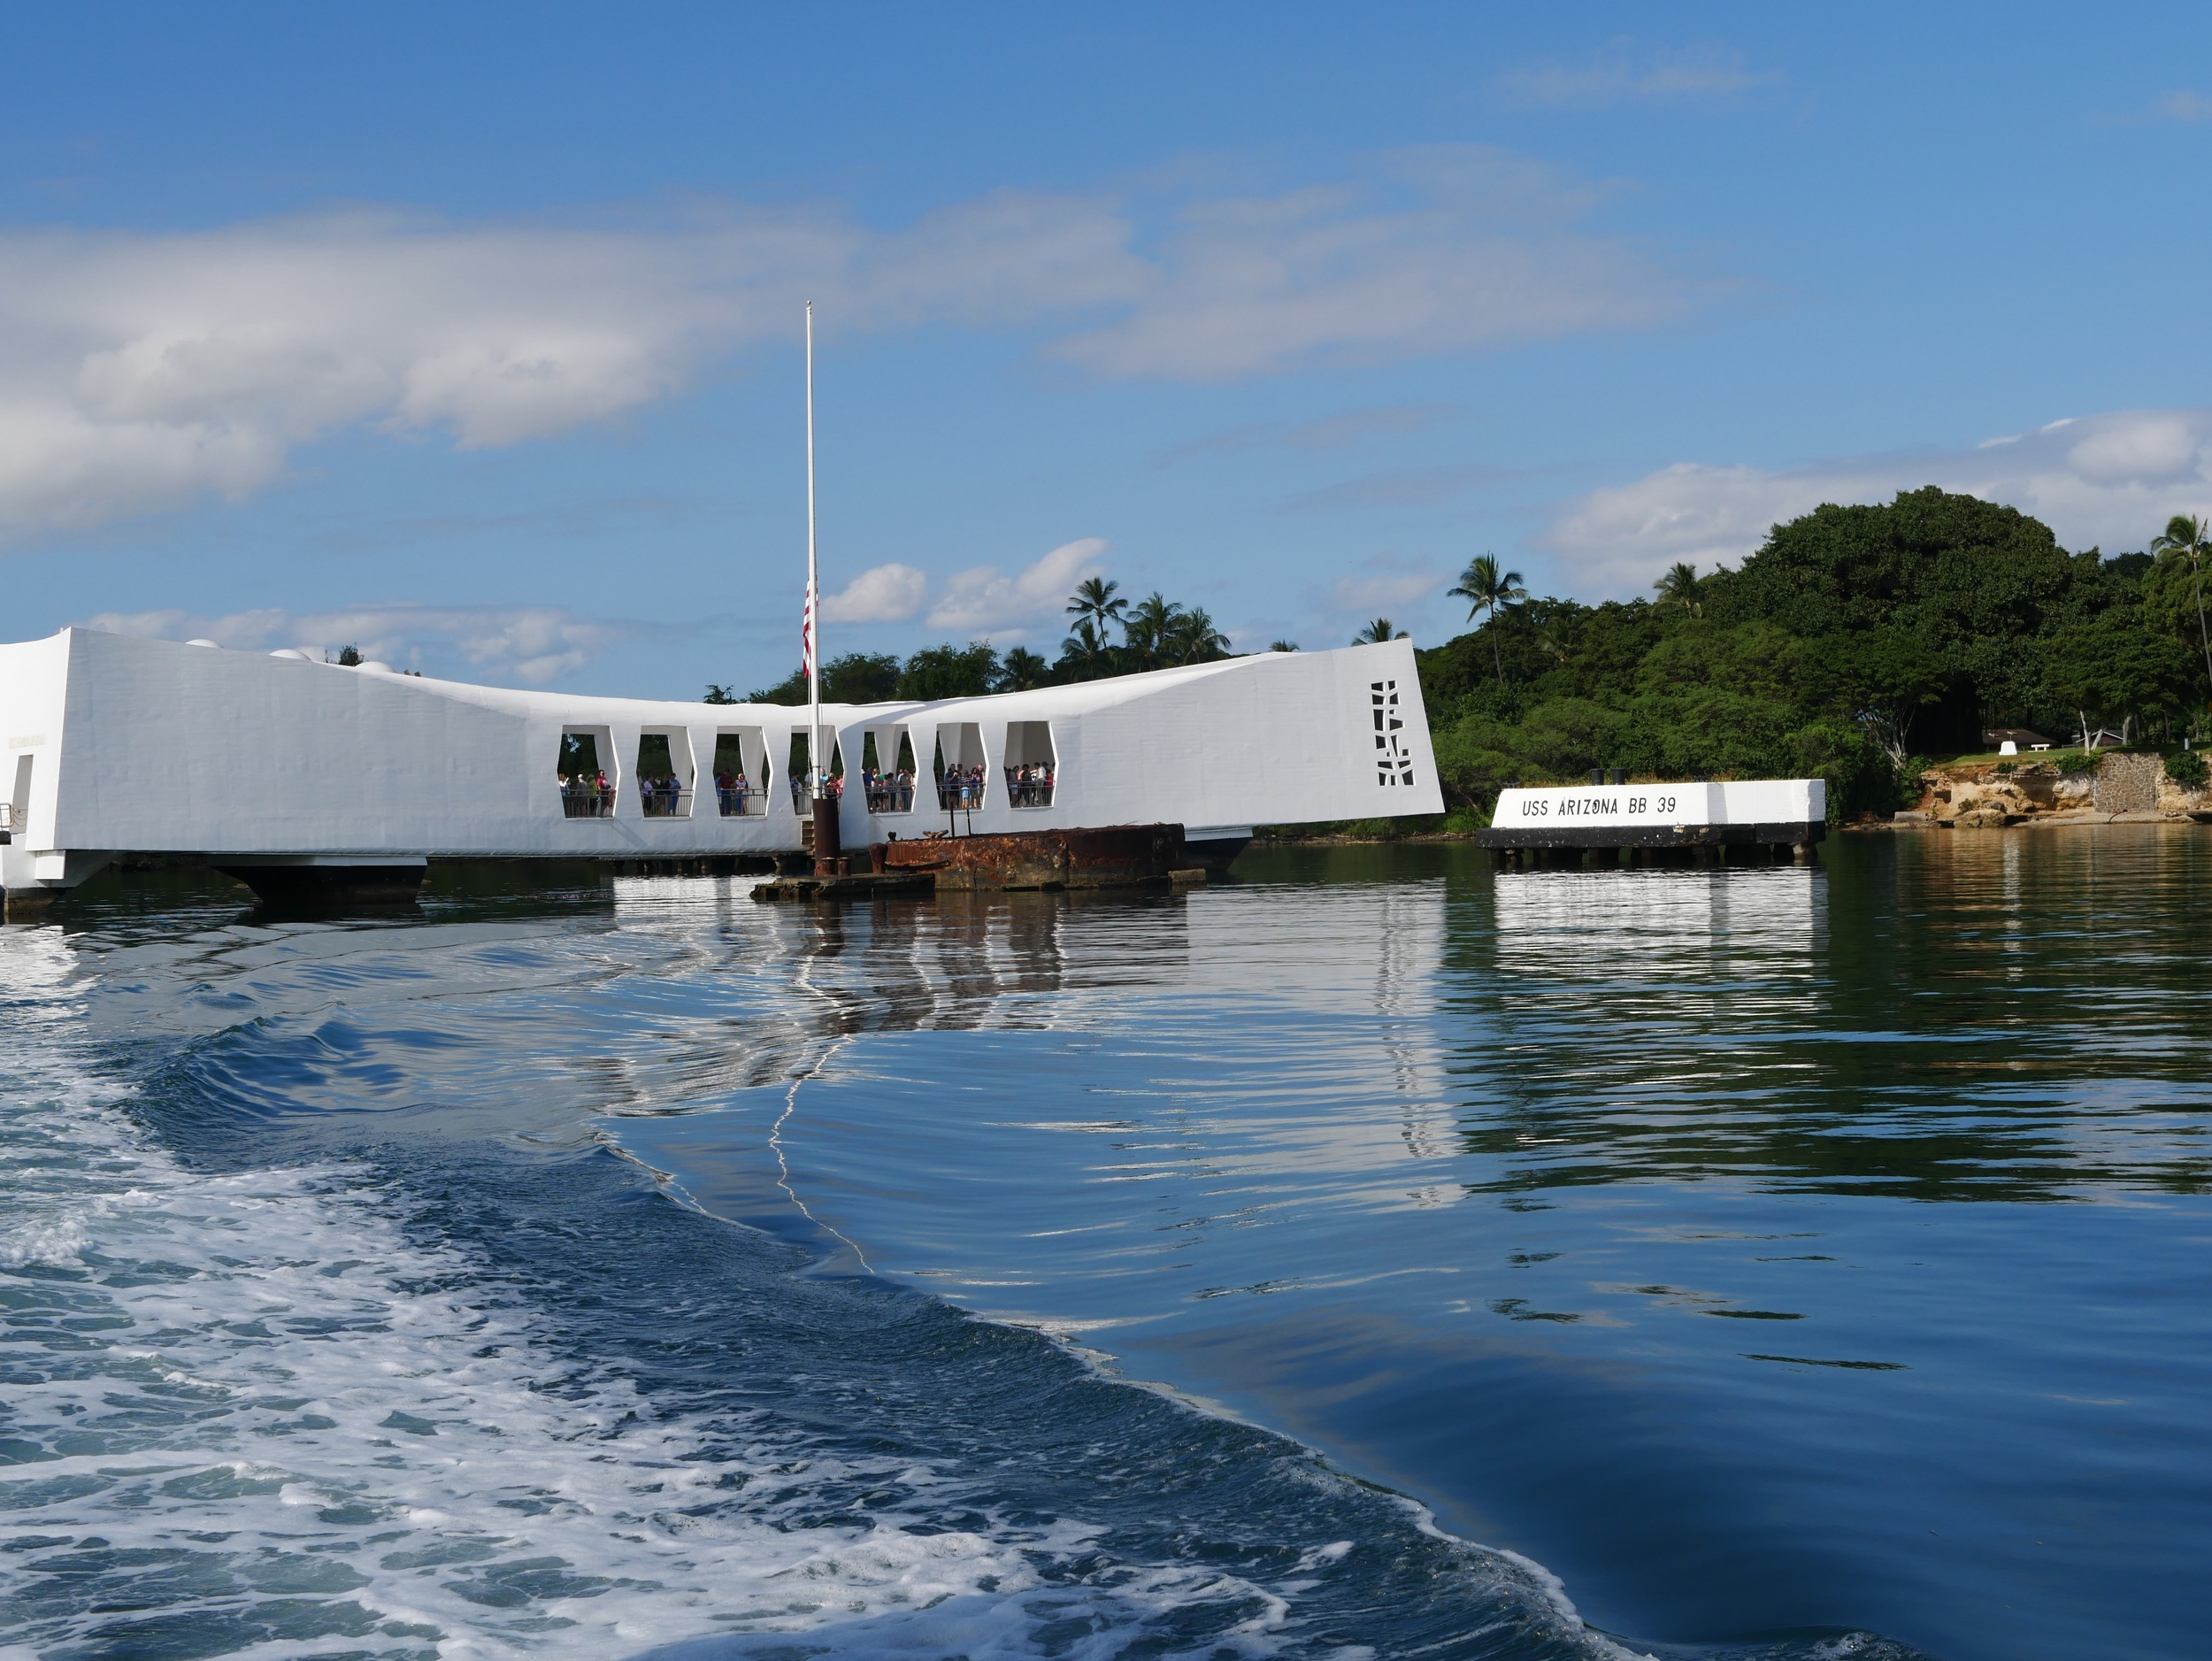 Just a short boat ride to the USS Arizona Memorial